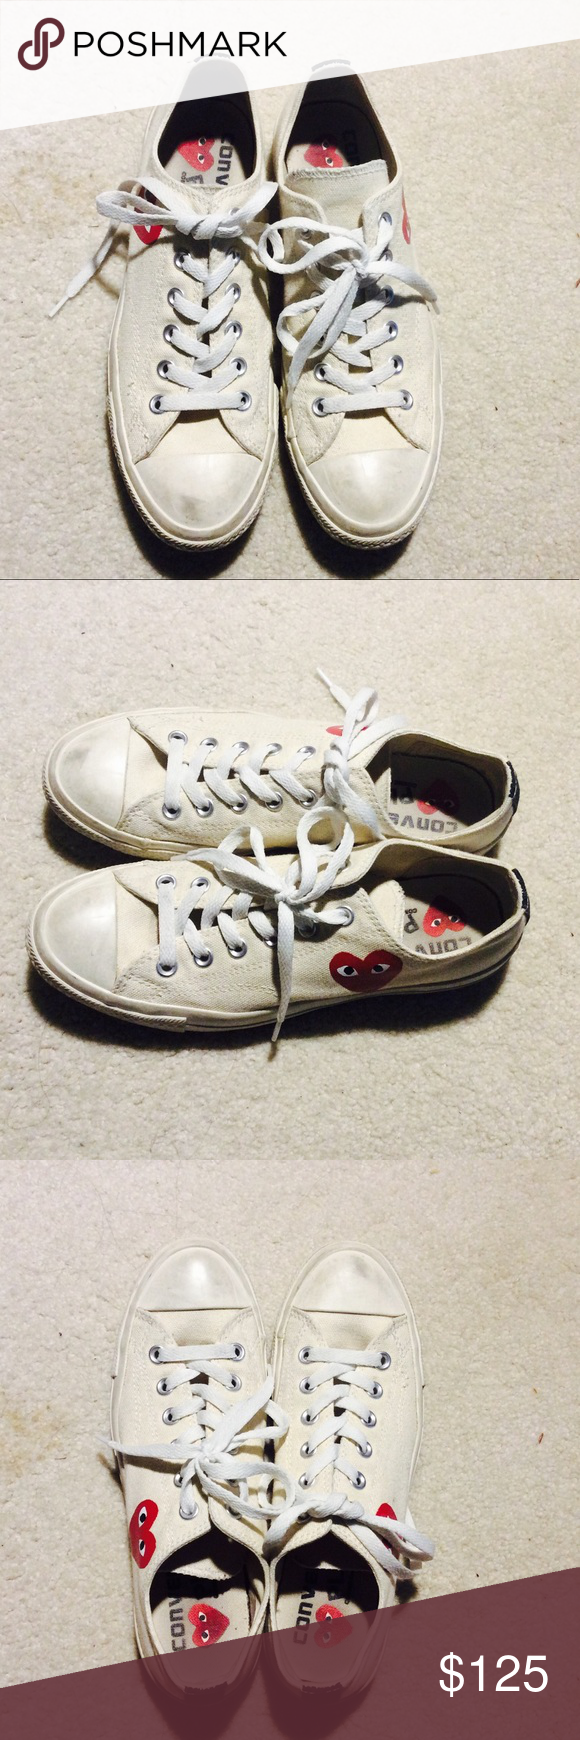 e0a7382e69 Converse Comme des Garcons beige low top 7M  9W Very rare. Sold out  everywhere